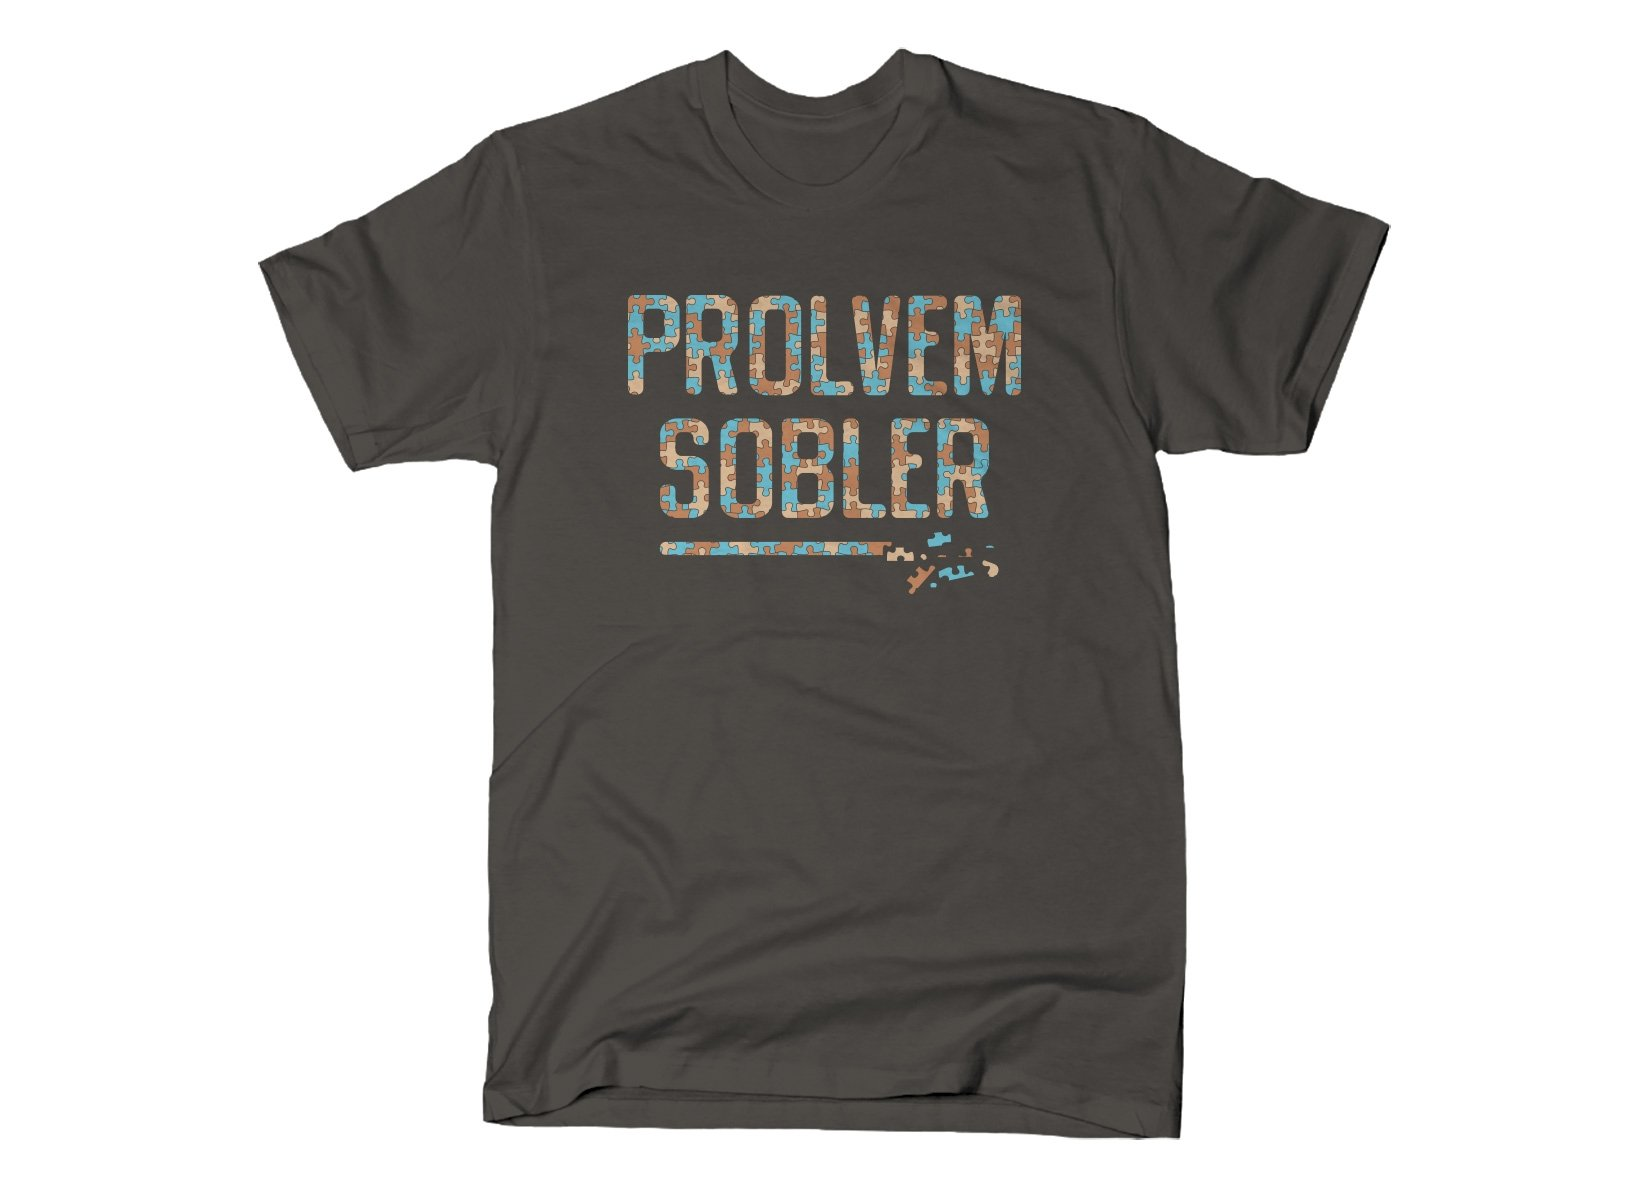 Prolvem Sobler on Mens T-Shirt